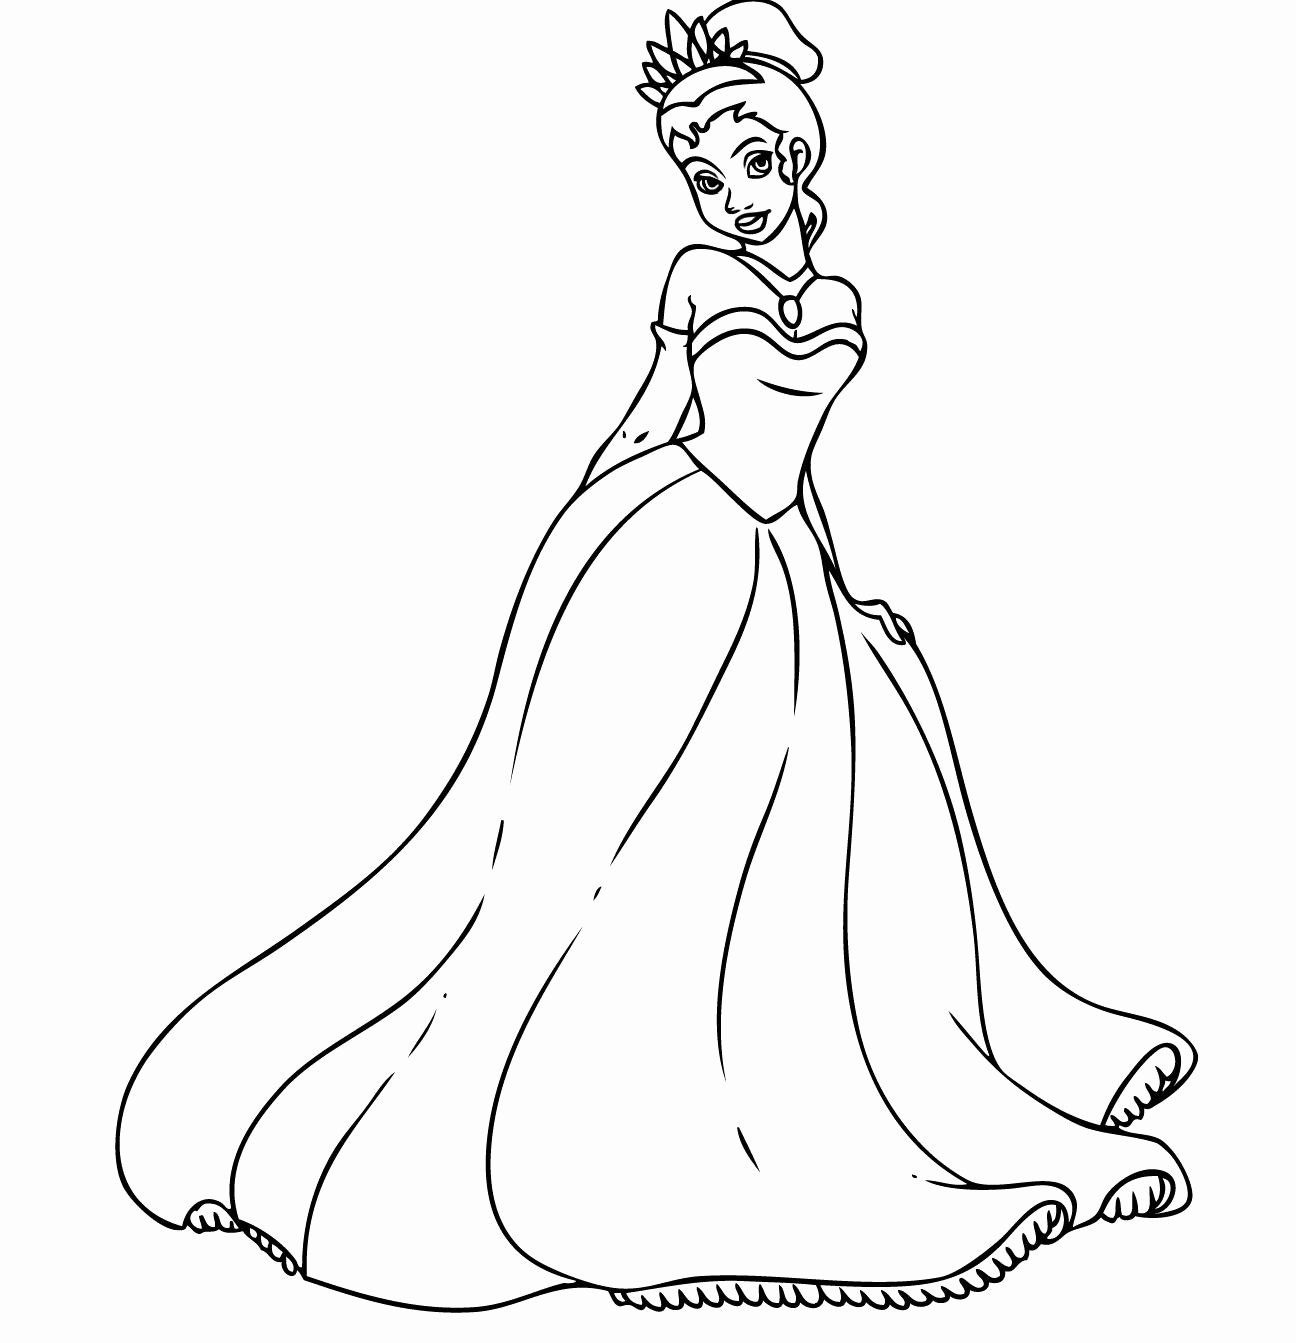 Printable Coloring Pages Princess Elegant Free Printable Princess Tiana Coloring In 2020 Disney Princess Coloring Pages Disney Princess Colors Princess Coloring Pages